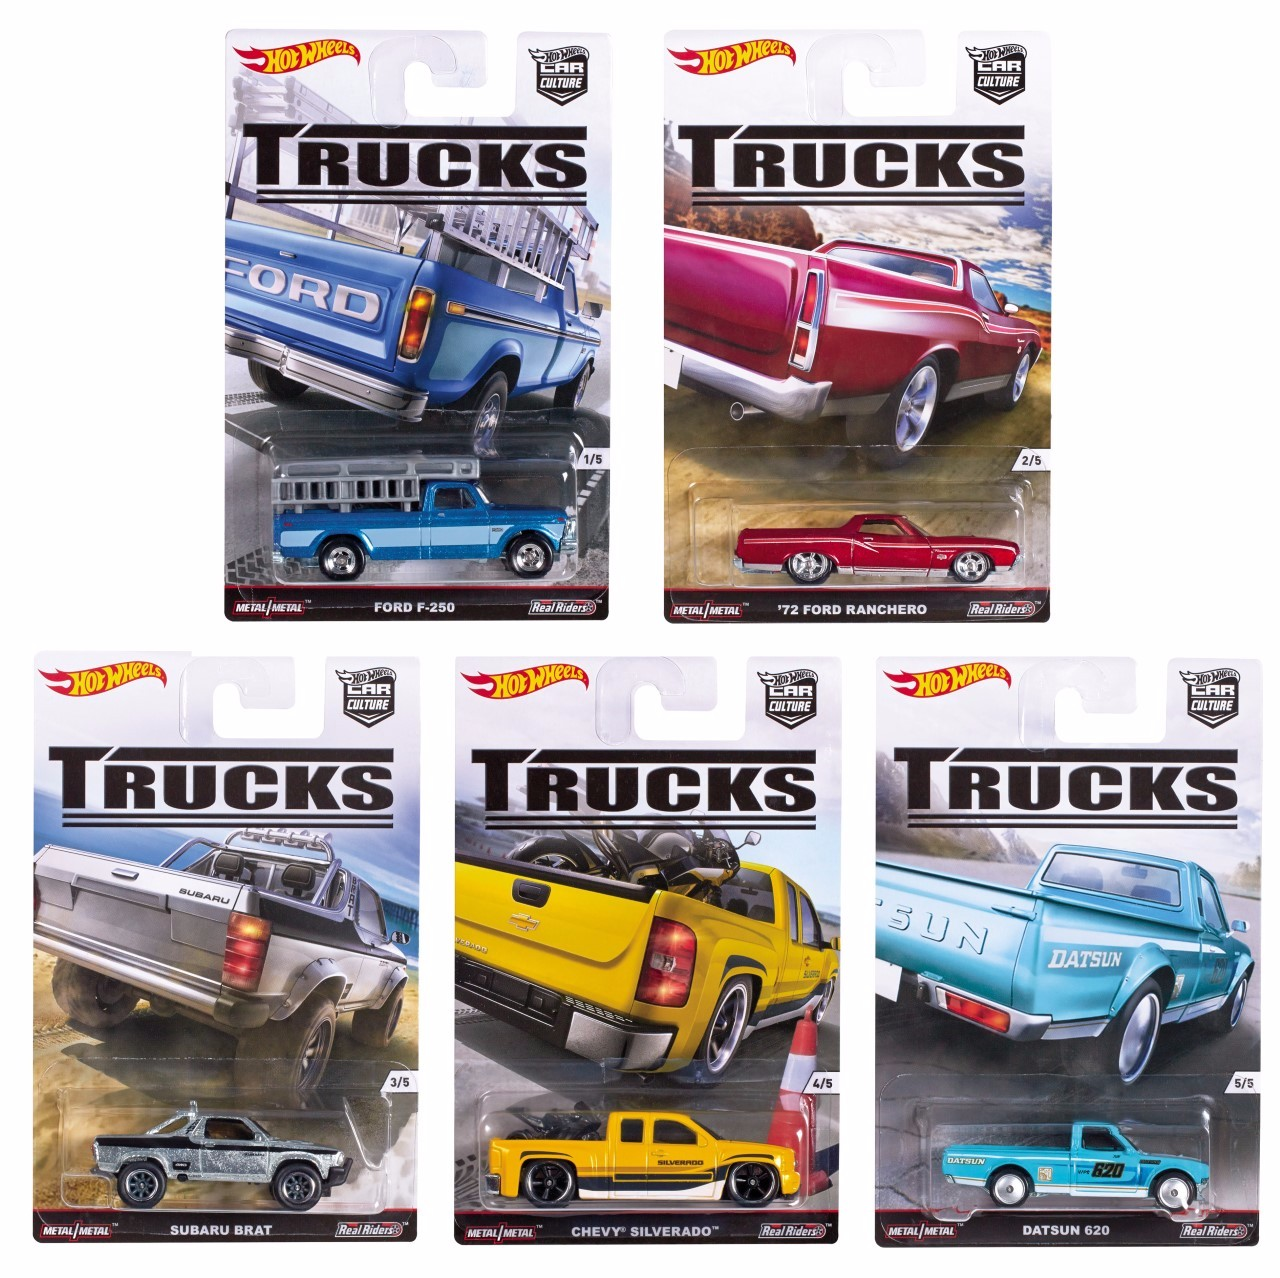 Hot Wheels 2016 Car Culture Trucks Set of 5 1 64 Scale Collectible Die Cast Toy Model Trucks by